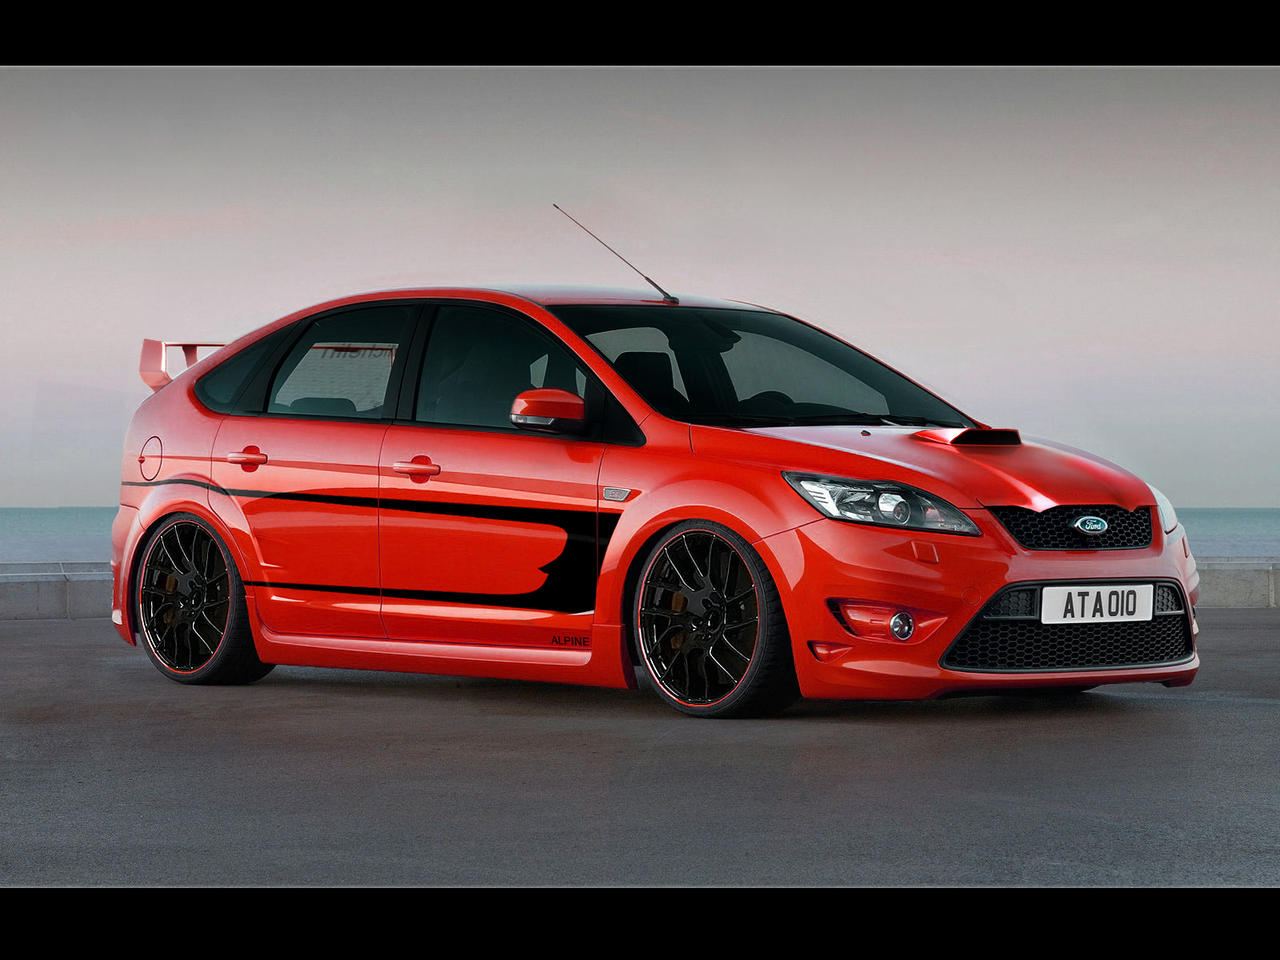 ford focus virtual tuning by microalex on deviantart. Black Bedroom Furniture Sets. Home Design Ideas